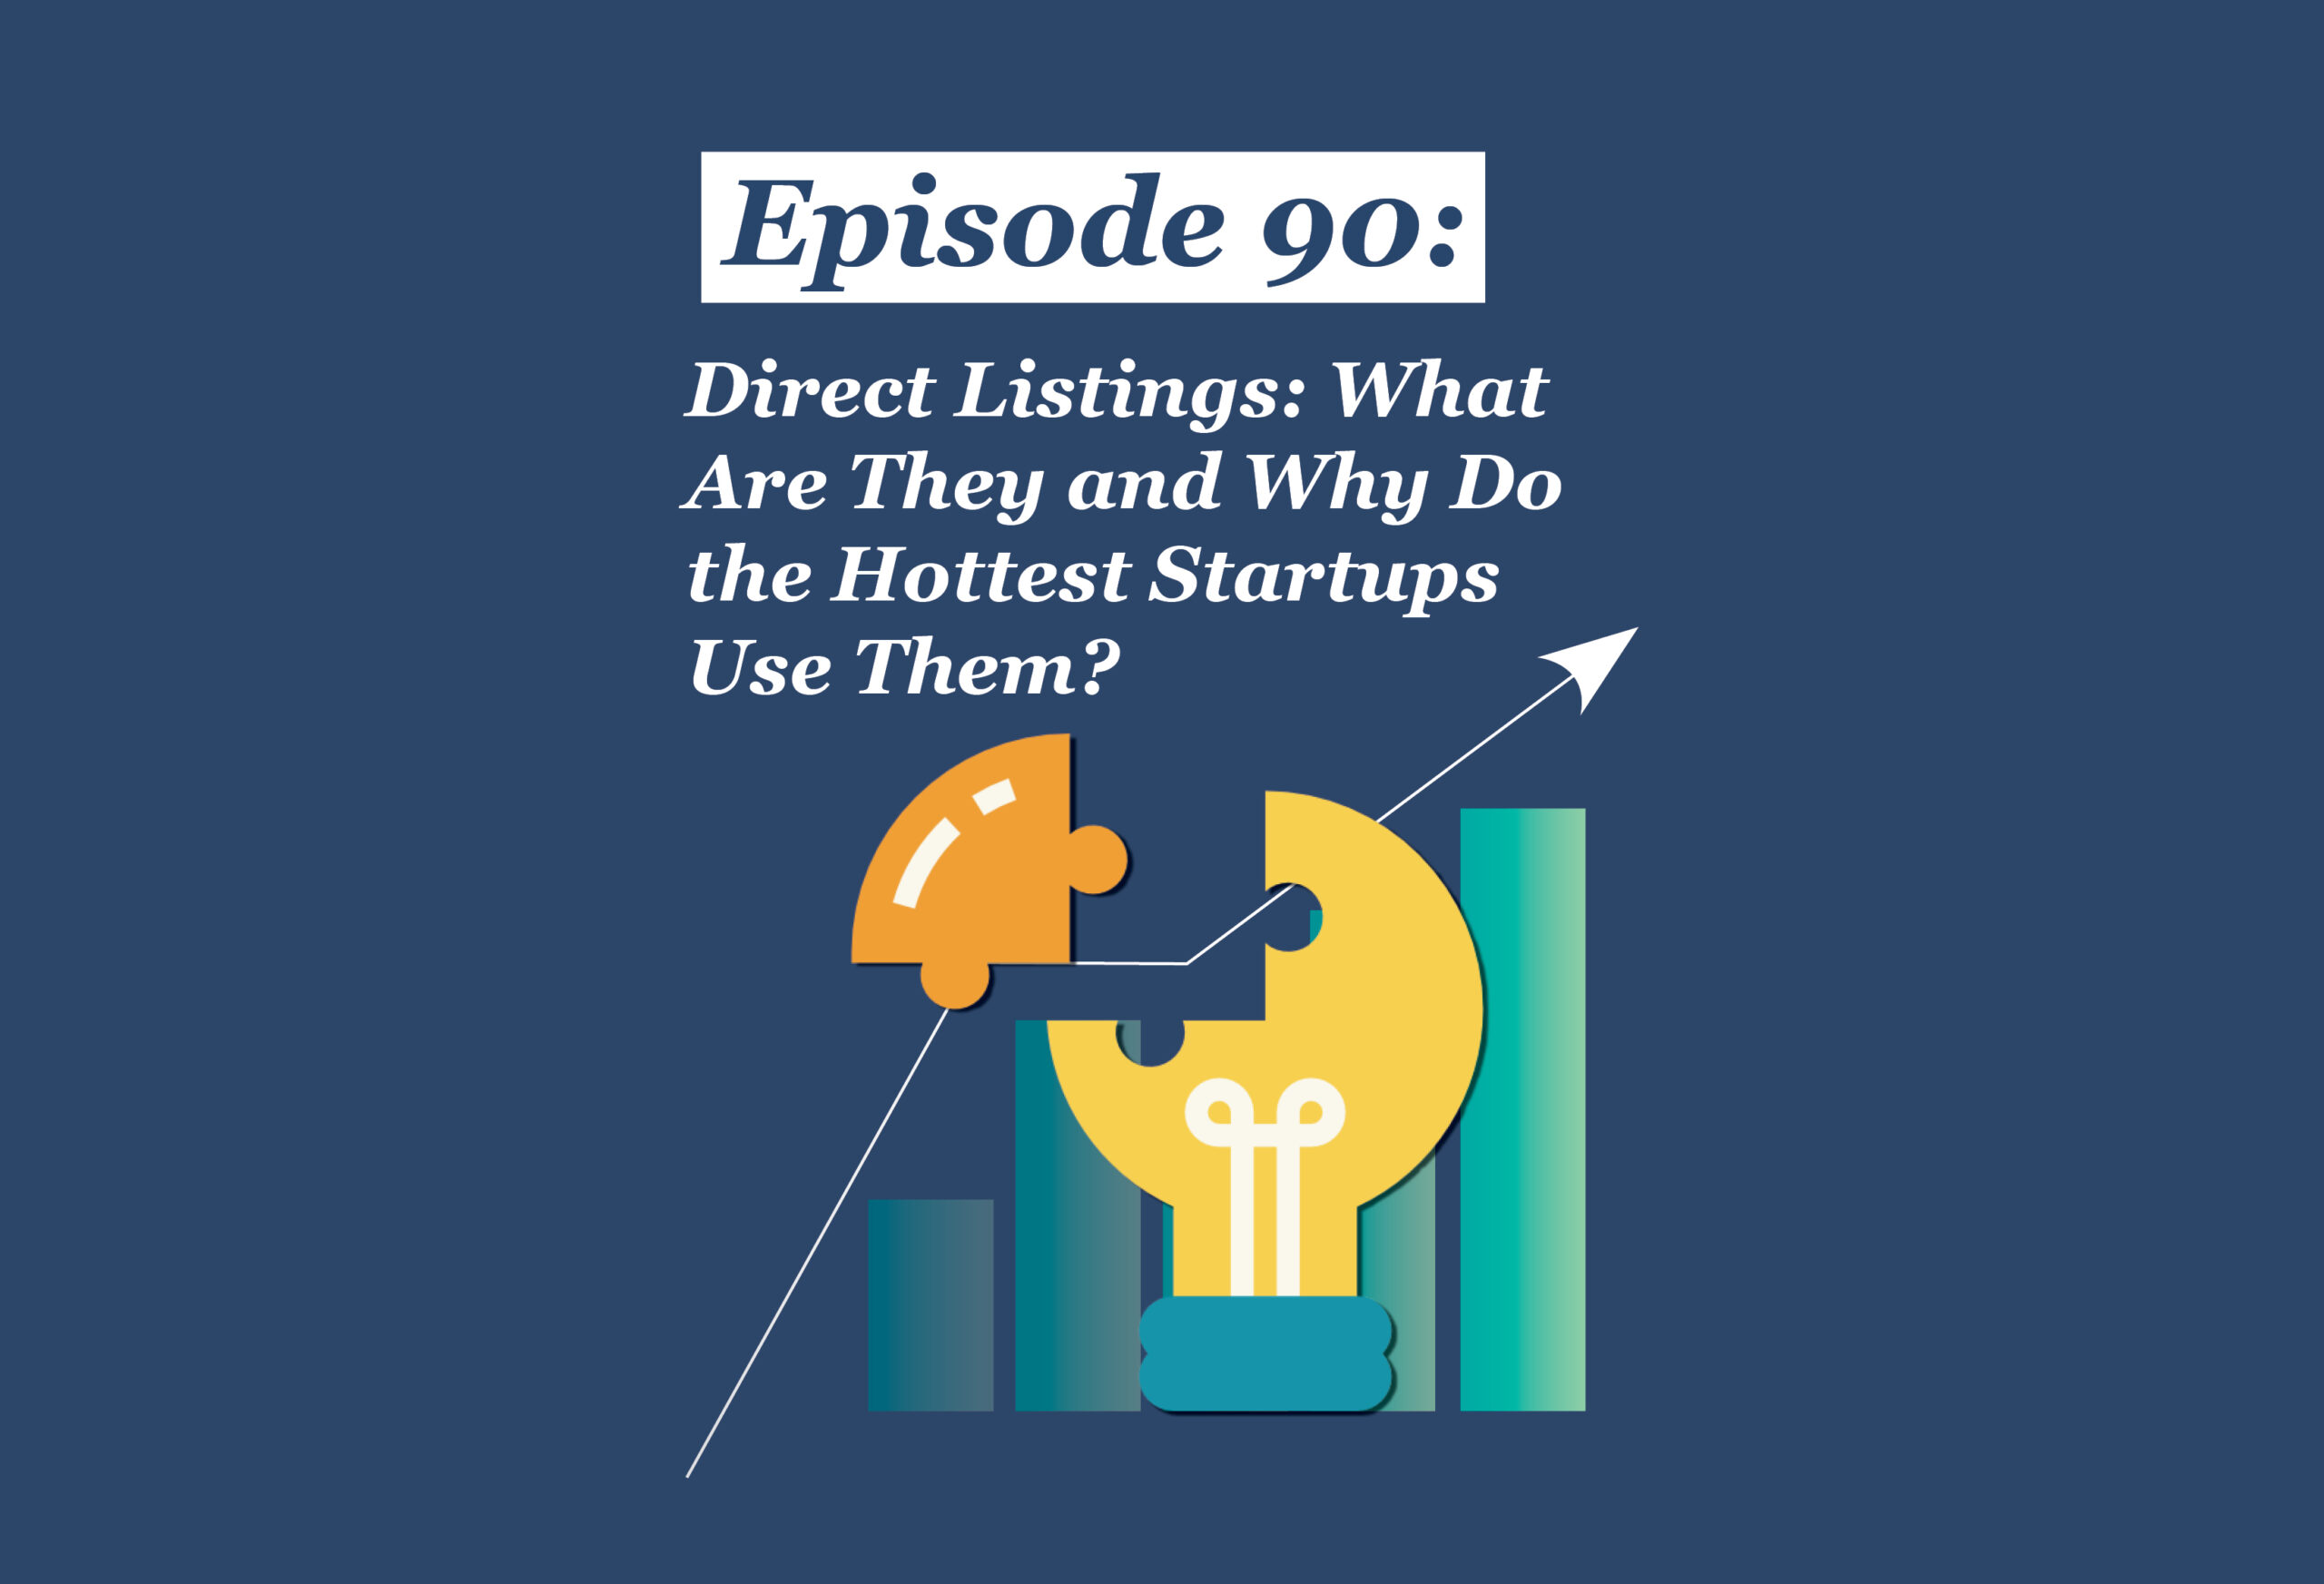 Absolute Return Podcast #90: Direct Listings: What Are They and Why Do the Hottest Startups Use Them?